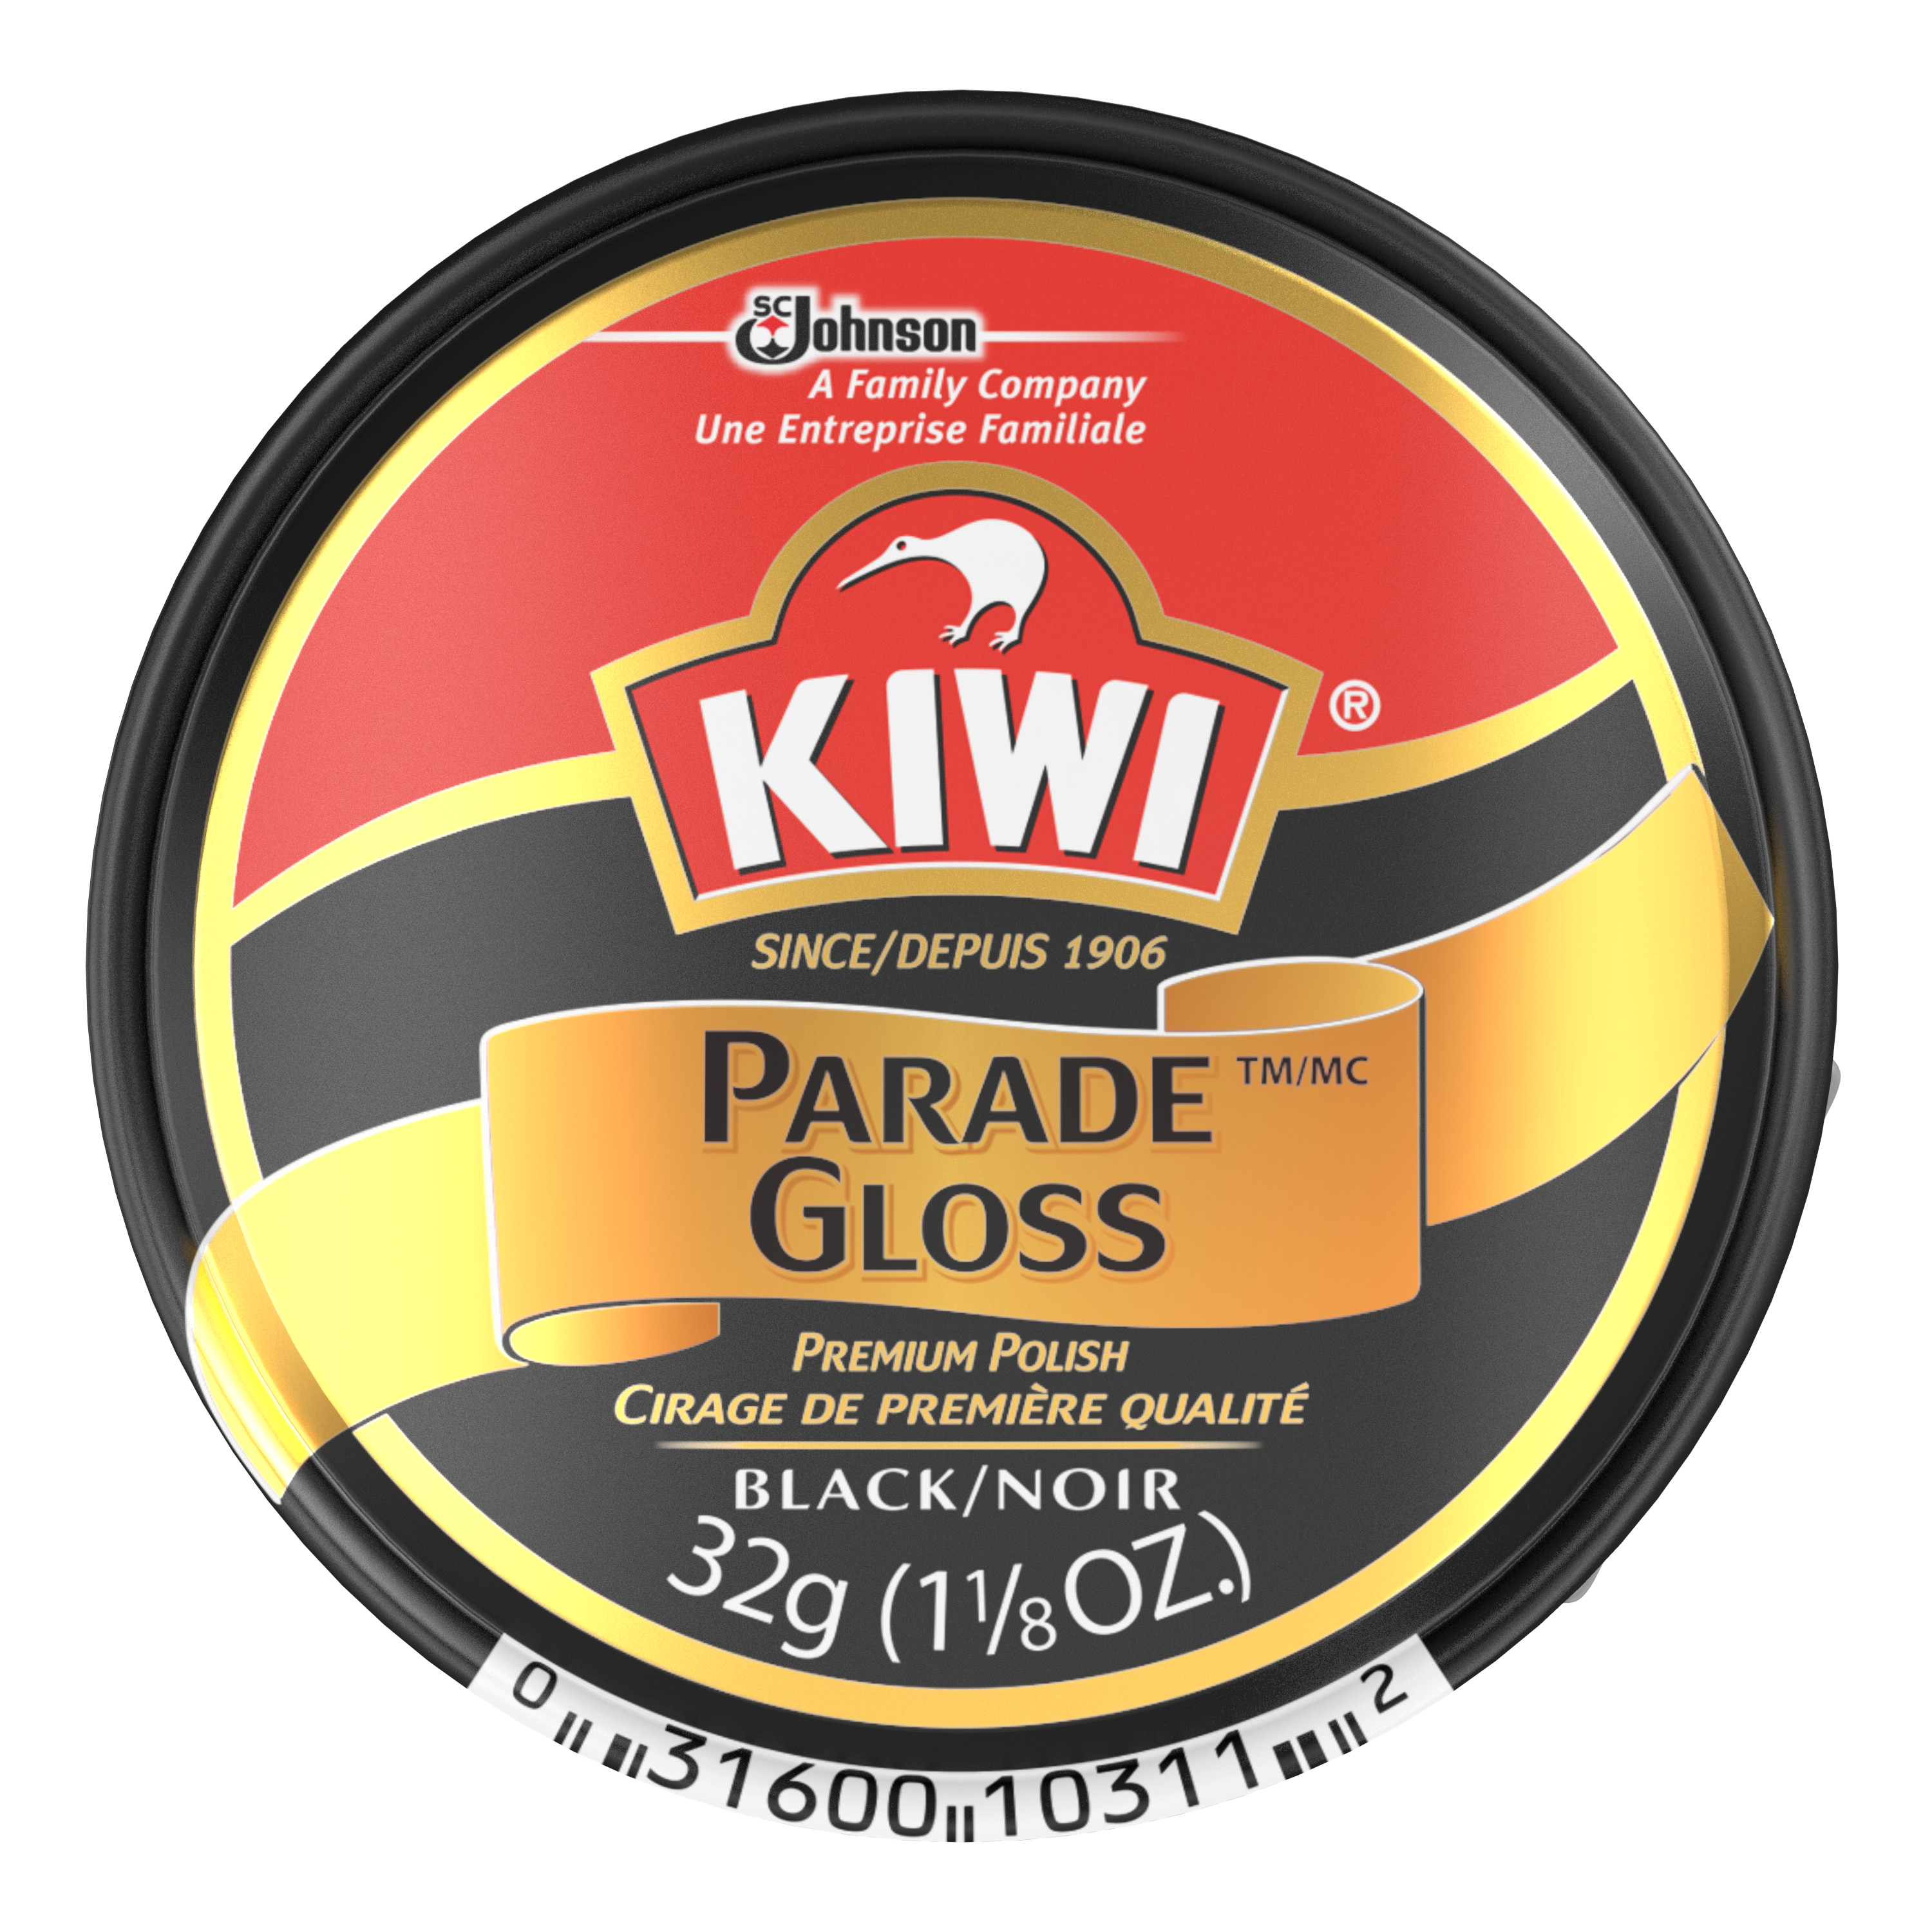 KIWI Small Parade Gloss Black 1.125 Ounces